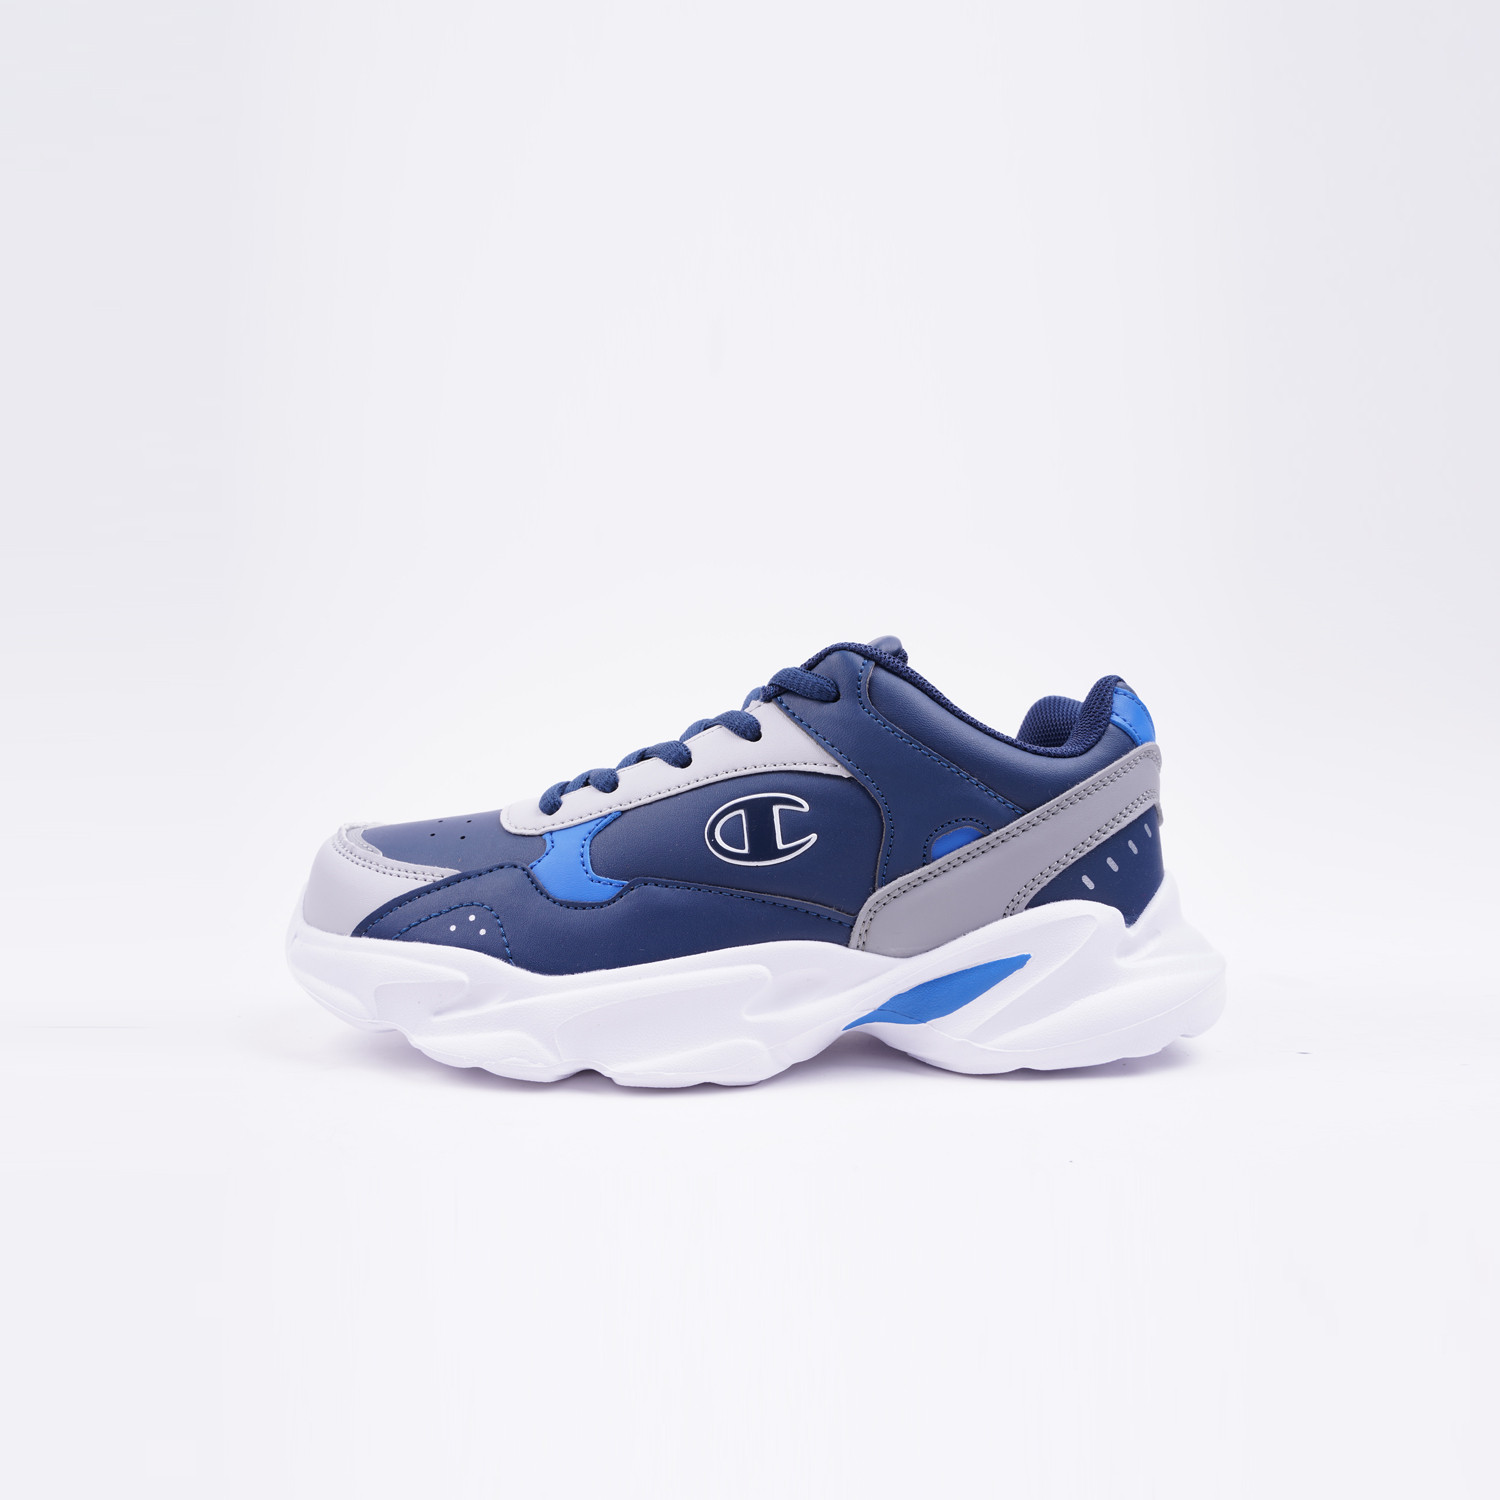 Champion Low Cut Shoe Philly B Παιδικά Παπούτσια (9000059766_1865)